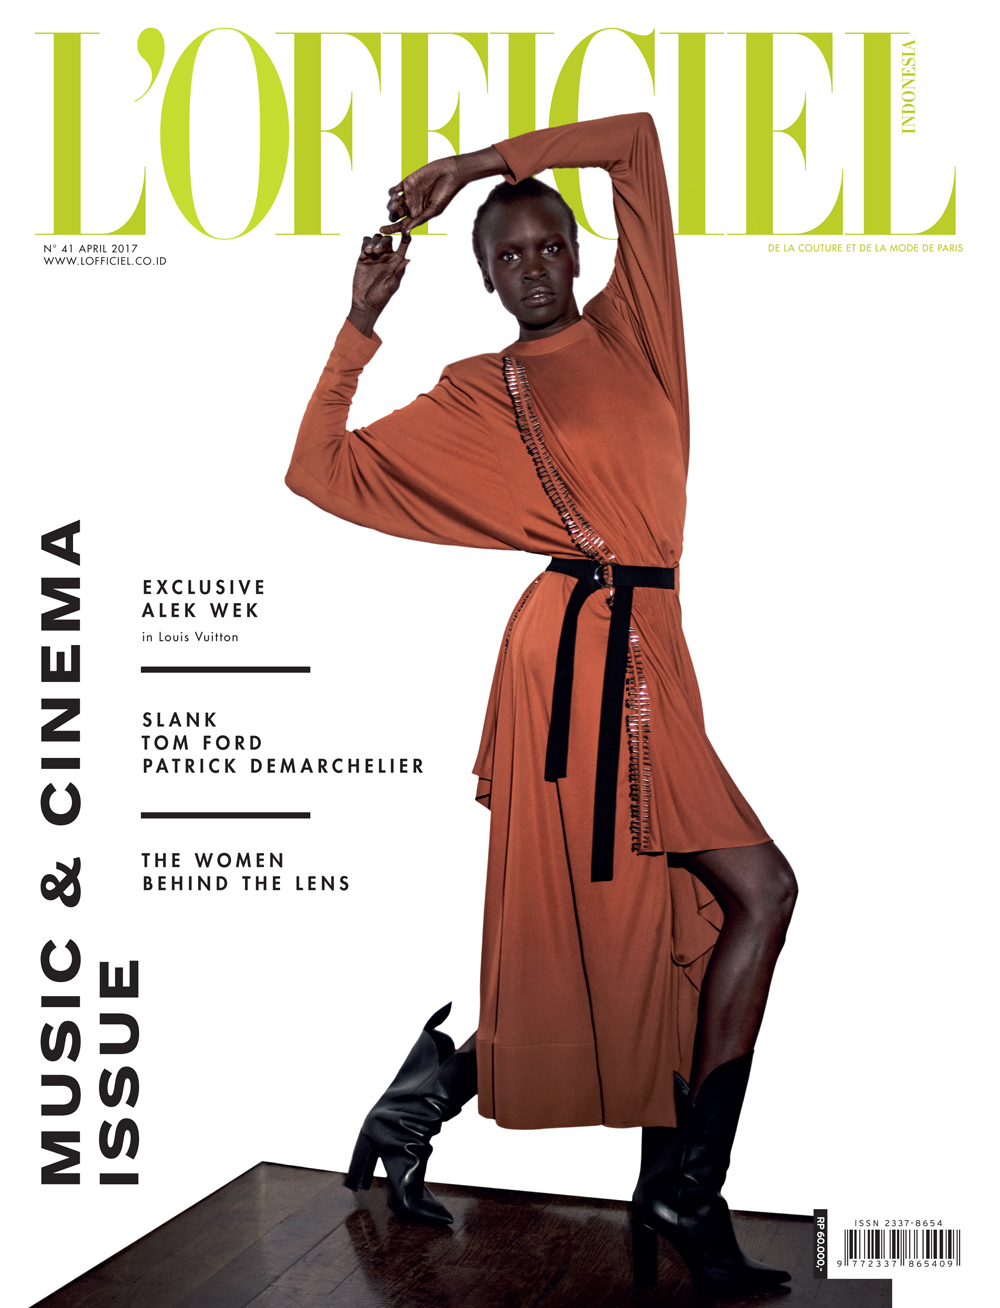 Alek Wek for L'Officiel by Onin Lorente